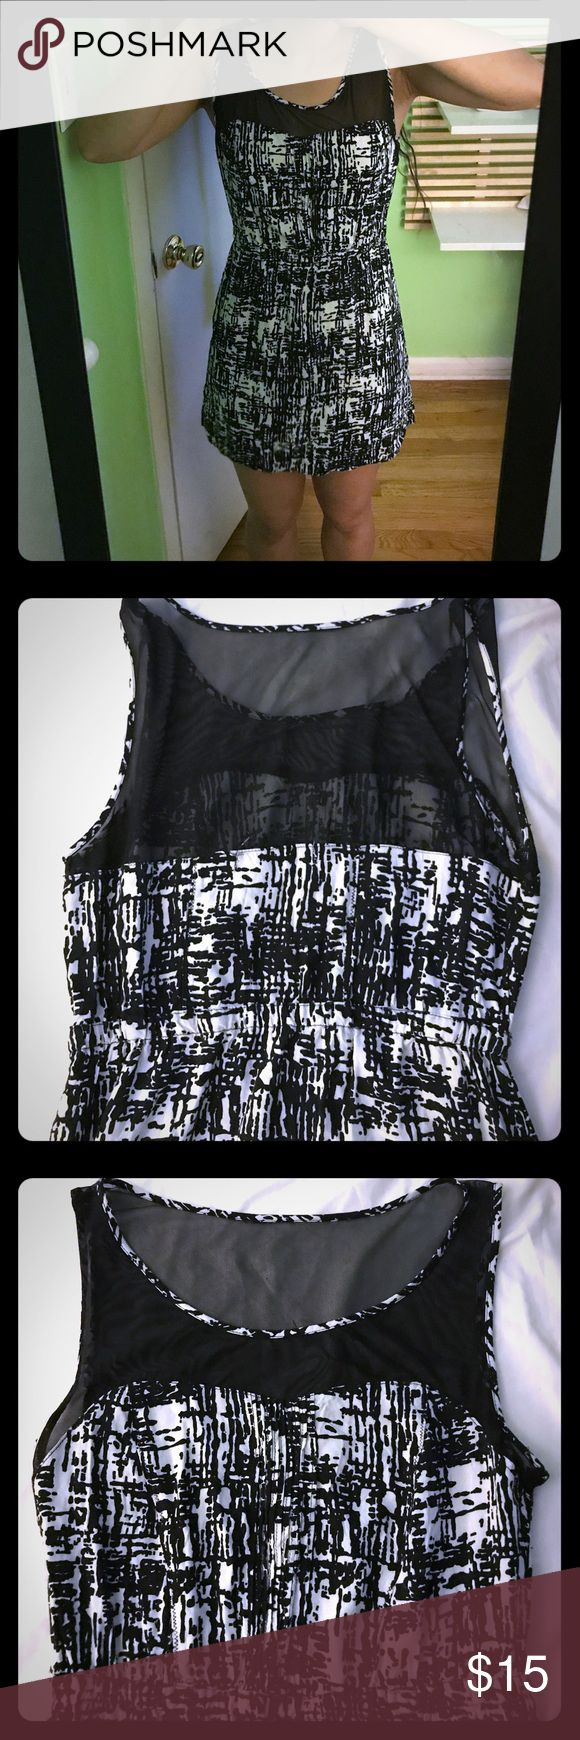 Selling this Forever 21 Cocktail Dress (black and white) on Poshmark! My username is: marqueln. #shopmycloset #poshmark #fashion #shopping #style #forsale #Forever 21 #Dresses & Skirts